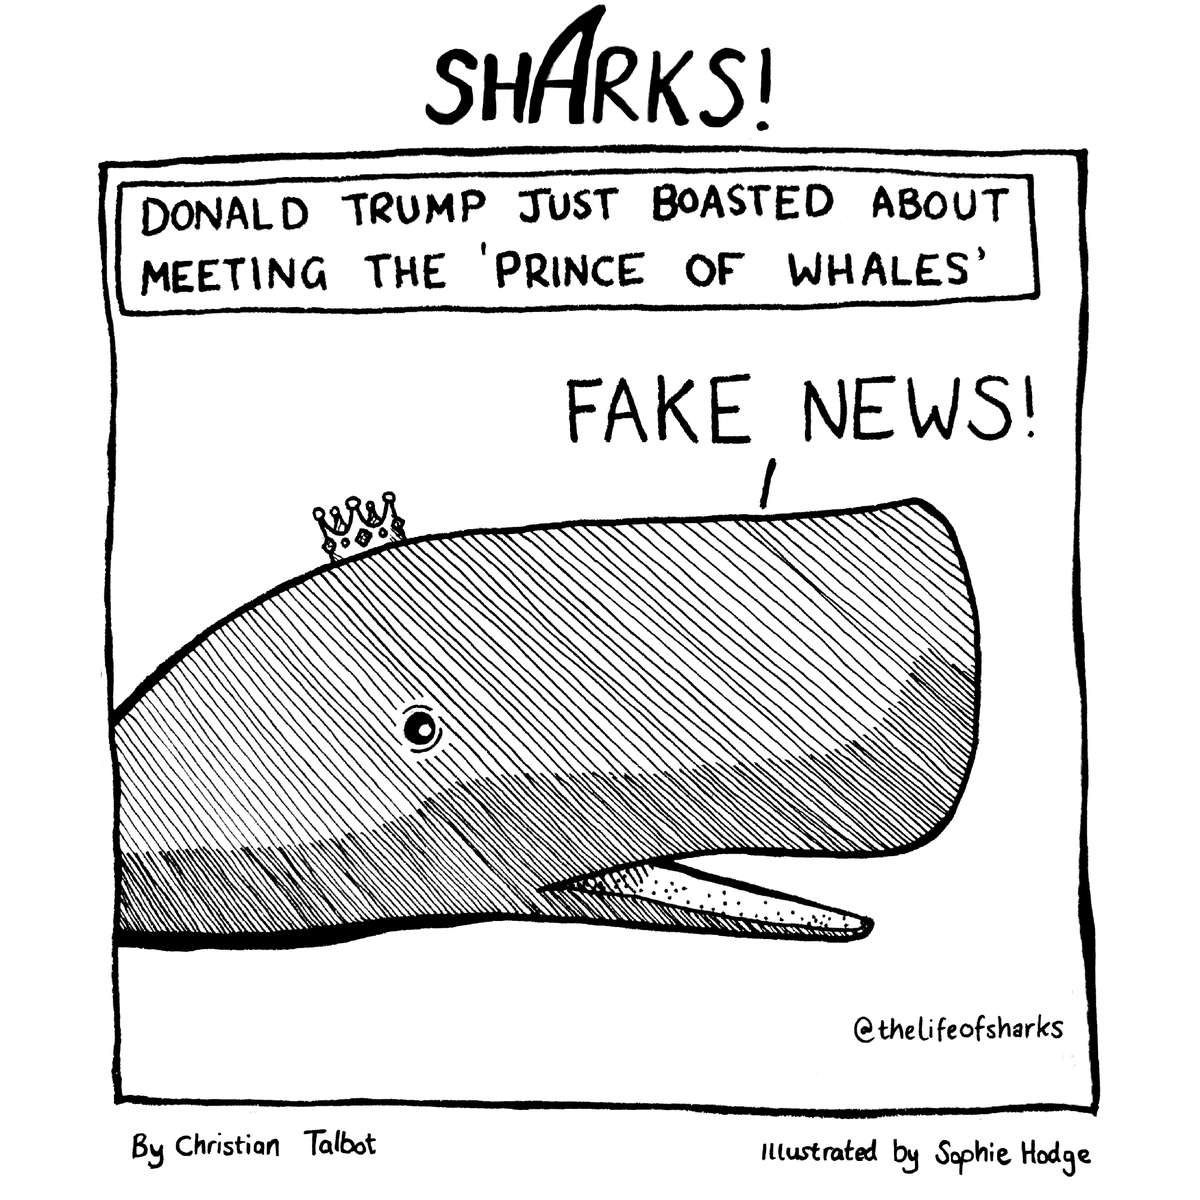 The Prince of Whales #PrinceOfWhales <br>http://pic.twitter.com/Xpq5PiegXS